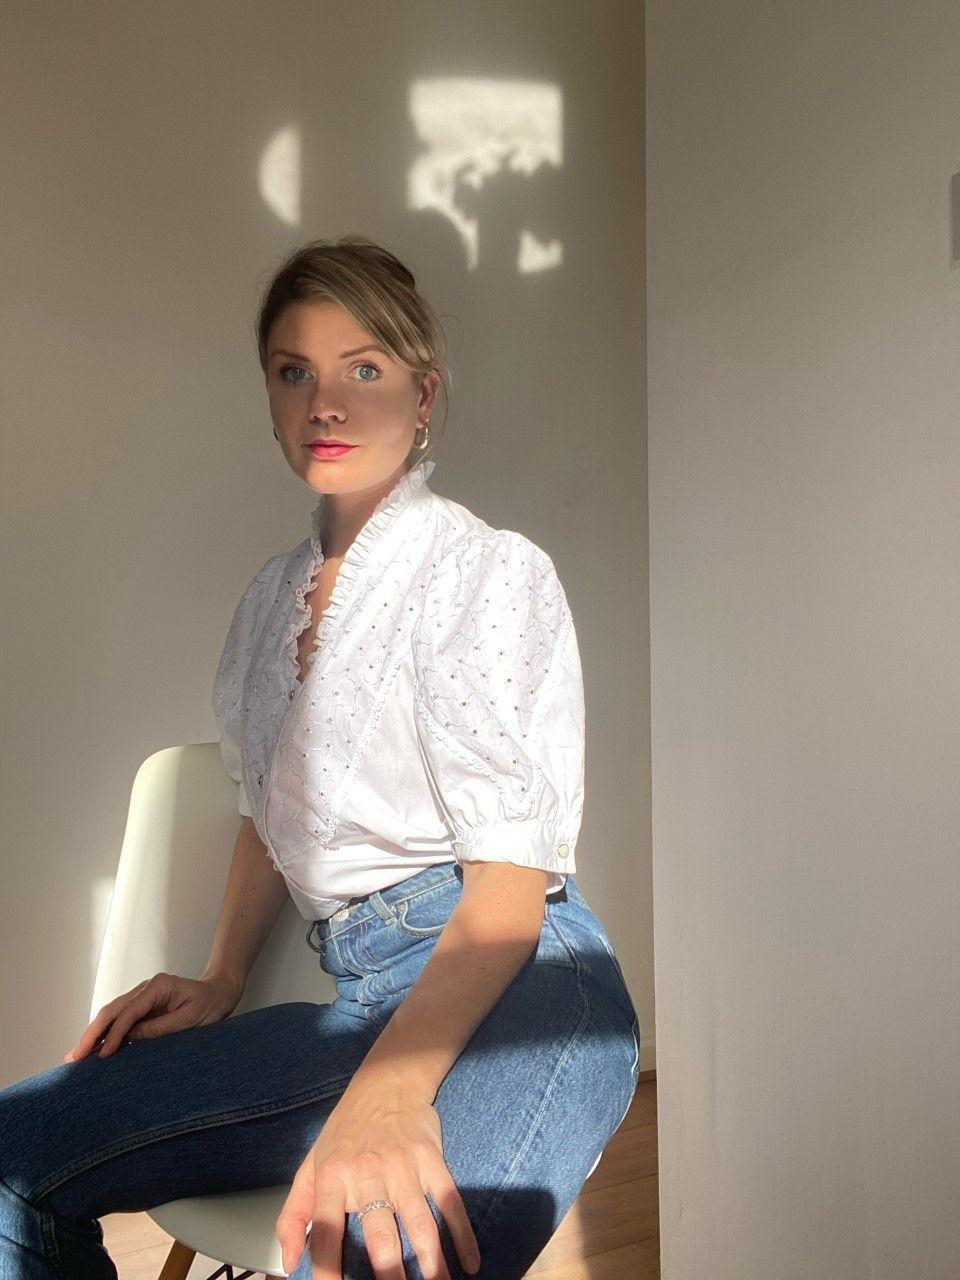 """<p>After working for over 15 years in the fashion industry, 36-year-old Nicci Fletcher opened her vintage shop, <a href=""""https://secondstories.co.uk/"""" rel=""""nofollow noopener"""" target=""""_blank"""" data-ylk=""""slk:Second Stories"""" class=""""link rapid-noclick-resp"""">Second Stories</a>, to reflect her personal shopping preferences. A mass clear-out of her clothes proved her most treasured items had lived a life before her, so in July 2019 she began sourcing and selling mid price pieces from Laura Ashley to Aquascutum. </p><p>'It's basically stuff I want to wear: sourced, prepped and ready for everyone else to enjoy because it makes me happy seeing beautiful things go on to have a second life, a Second Story,' Fletcher explained. </p><p><a class=""""link rapid-noclick-resp"""" href=""""https://secondstories.co.uk/"""" rel=""""nofollow noopener"""" target=""""_blank"""" data-ylk=""""slk:SHOP SECOND STORIES NOW"""">SHOP SECOND STORIES NOW</a></p>"""